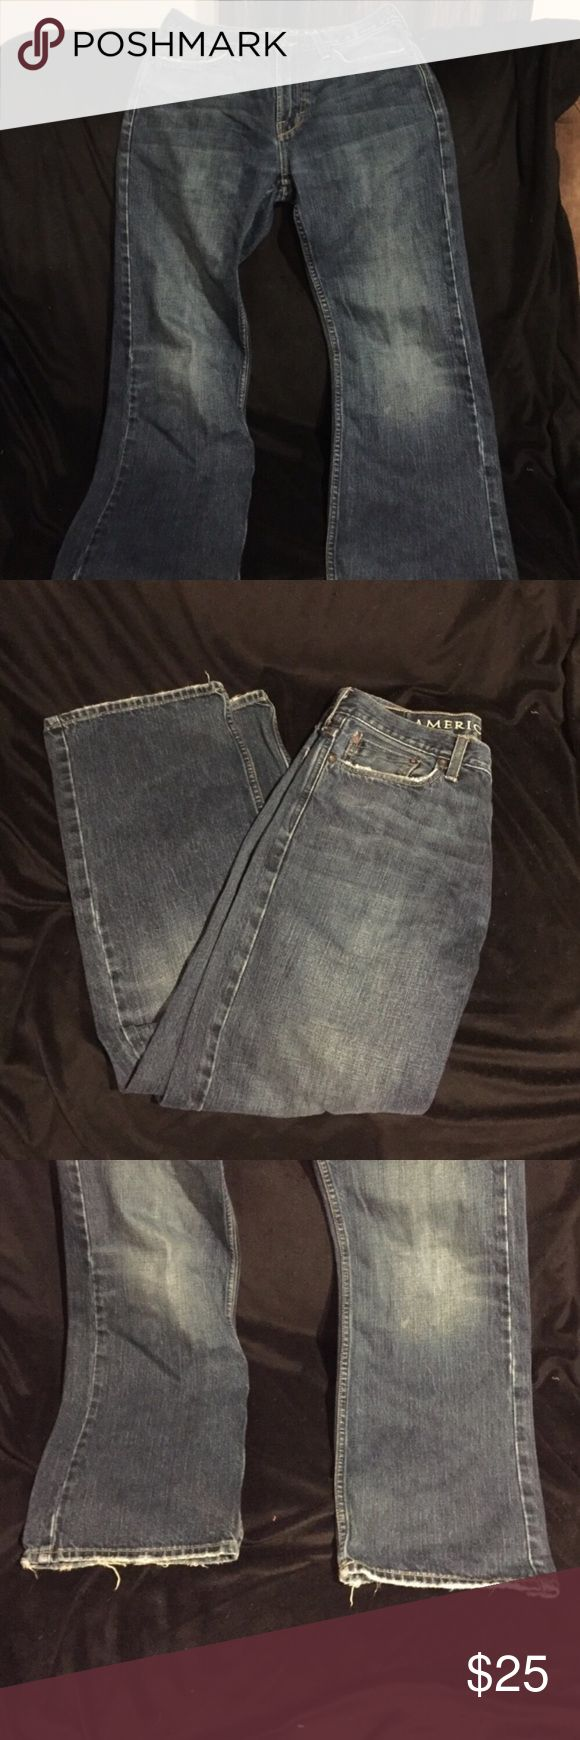 American eagle dark wash jeans Guc, some fraying on the bottom. 30/30. No trades, no PP, no offsite transactions. Dog friendly smoke free home. I will gladly provide measurements if asked ☺️ American Eagle Outfitters Jeans Bootcut